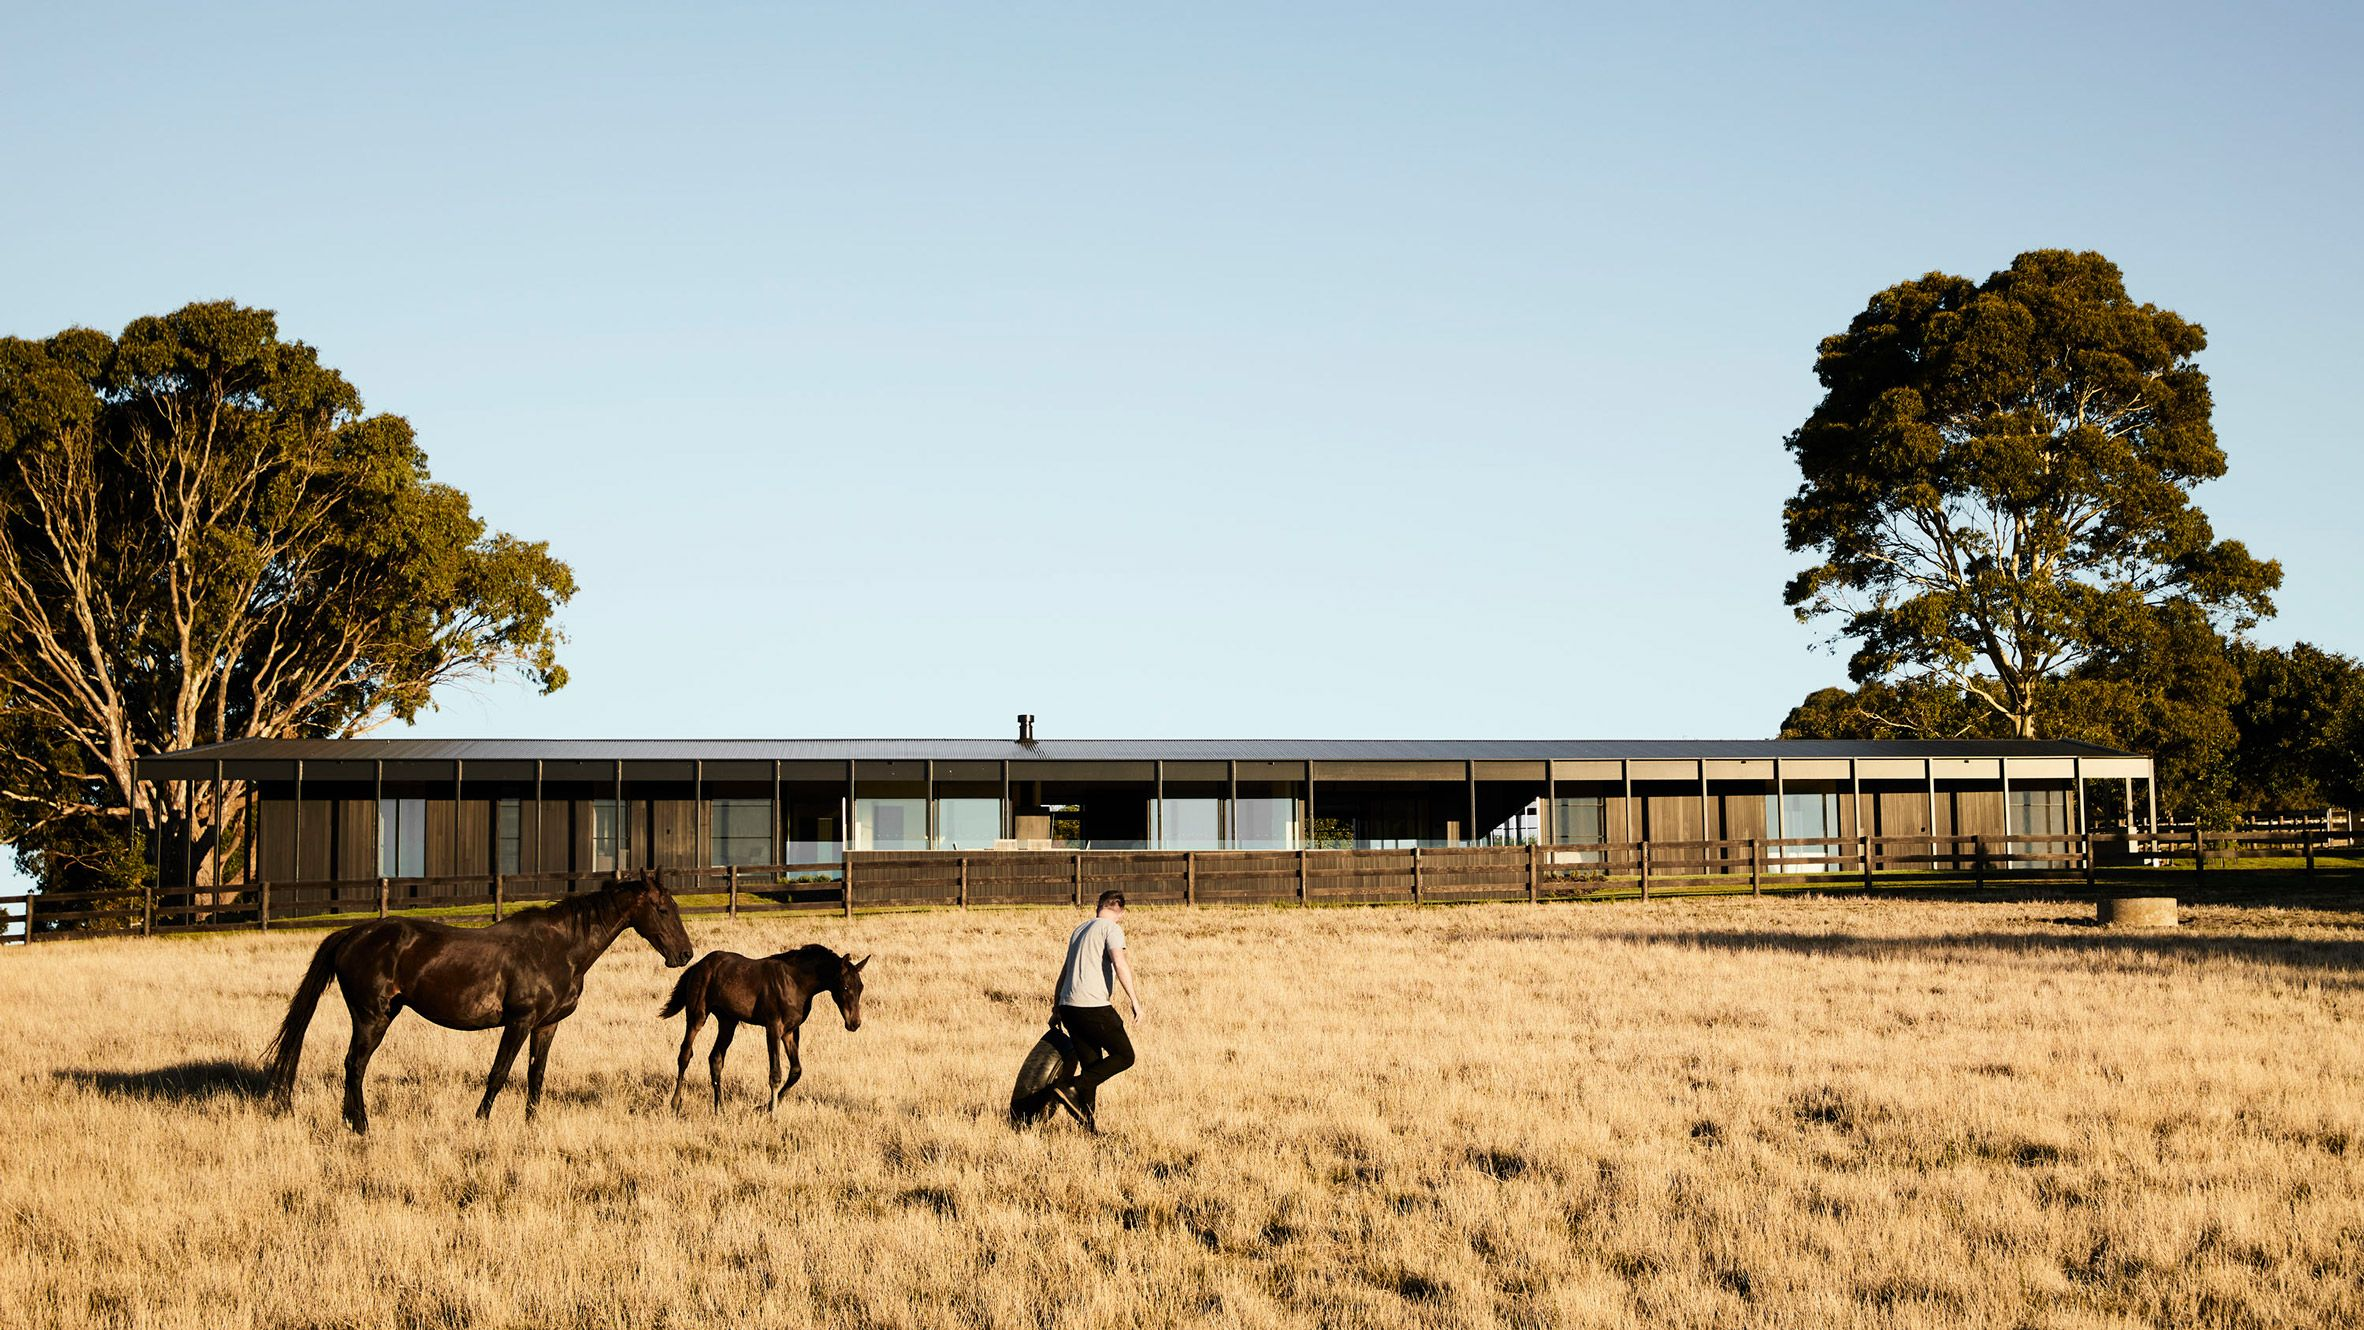 This low lying house on the mornington peninsula near melbourne features blackened timber facades that reference the vernacular style of local farmhouses